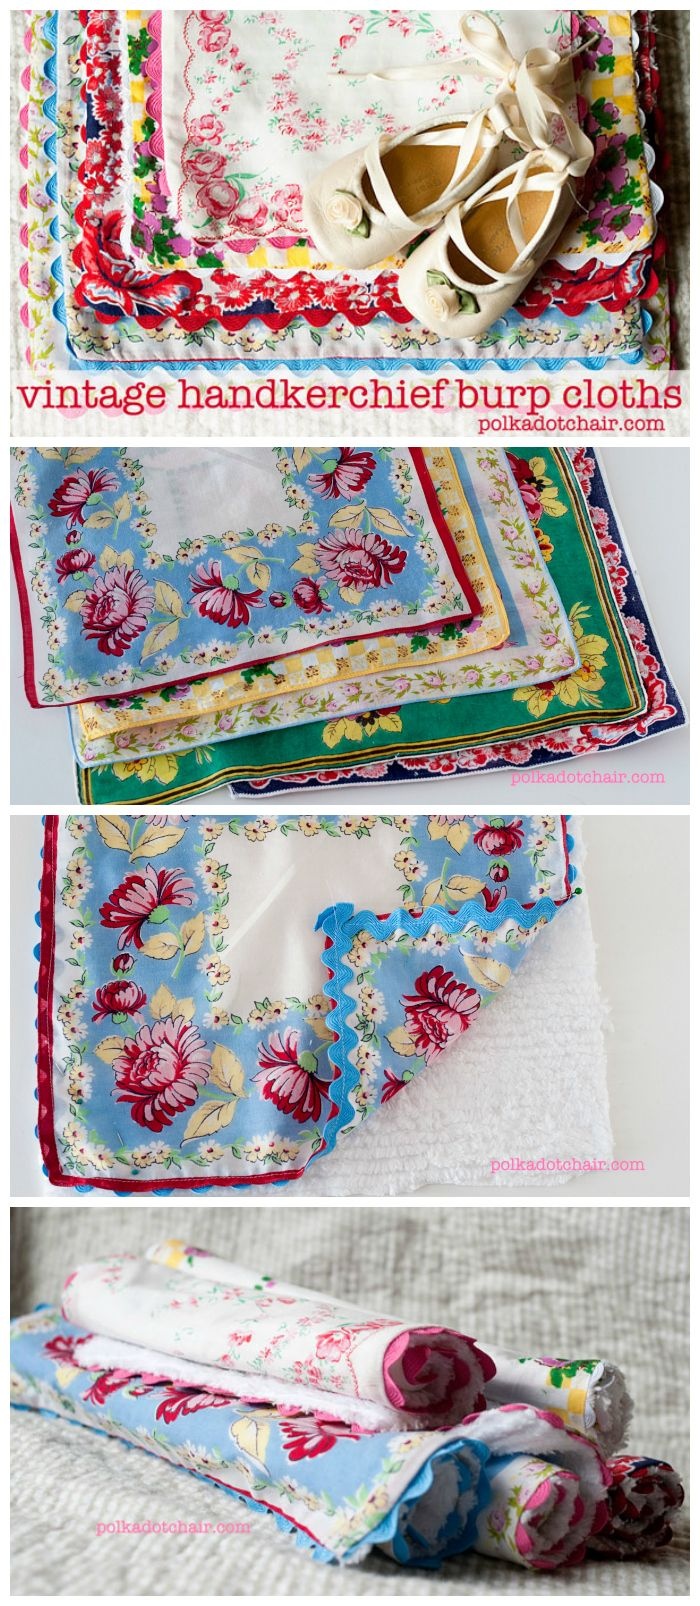 new baby craft ideas best 27 handkerchief craft ideas images on diy 5026